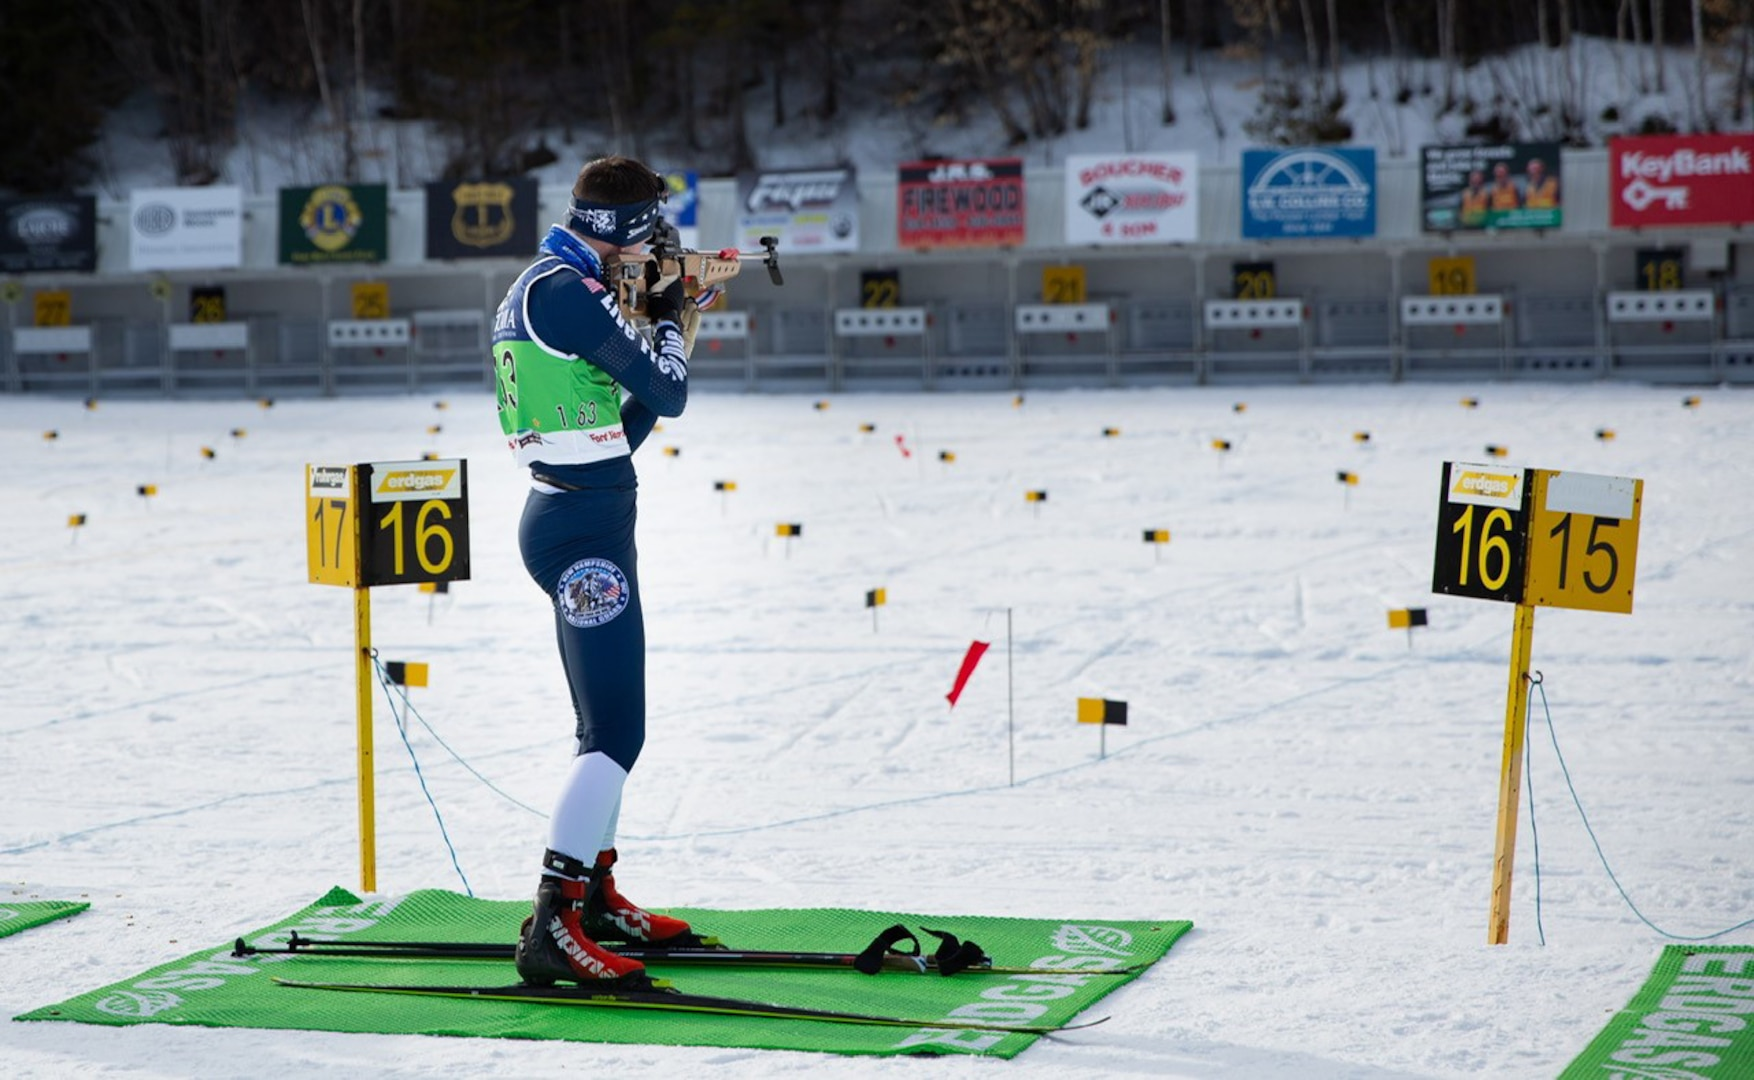 New Hampshire National Guard Spc. Thomas Echelberger shoots at the Biathlon Spring Fling on March 3, 2021, at Fort Kent, Maine. Echelberger placed sixth out of 35 competitors.